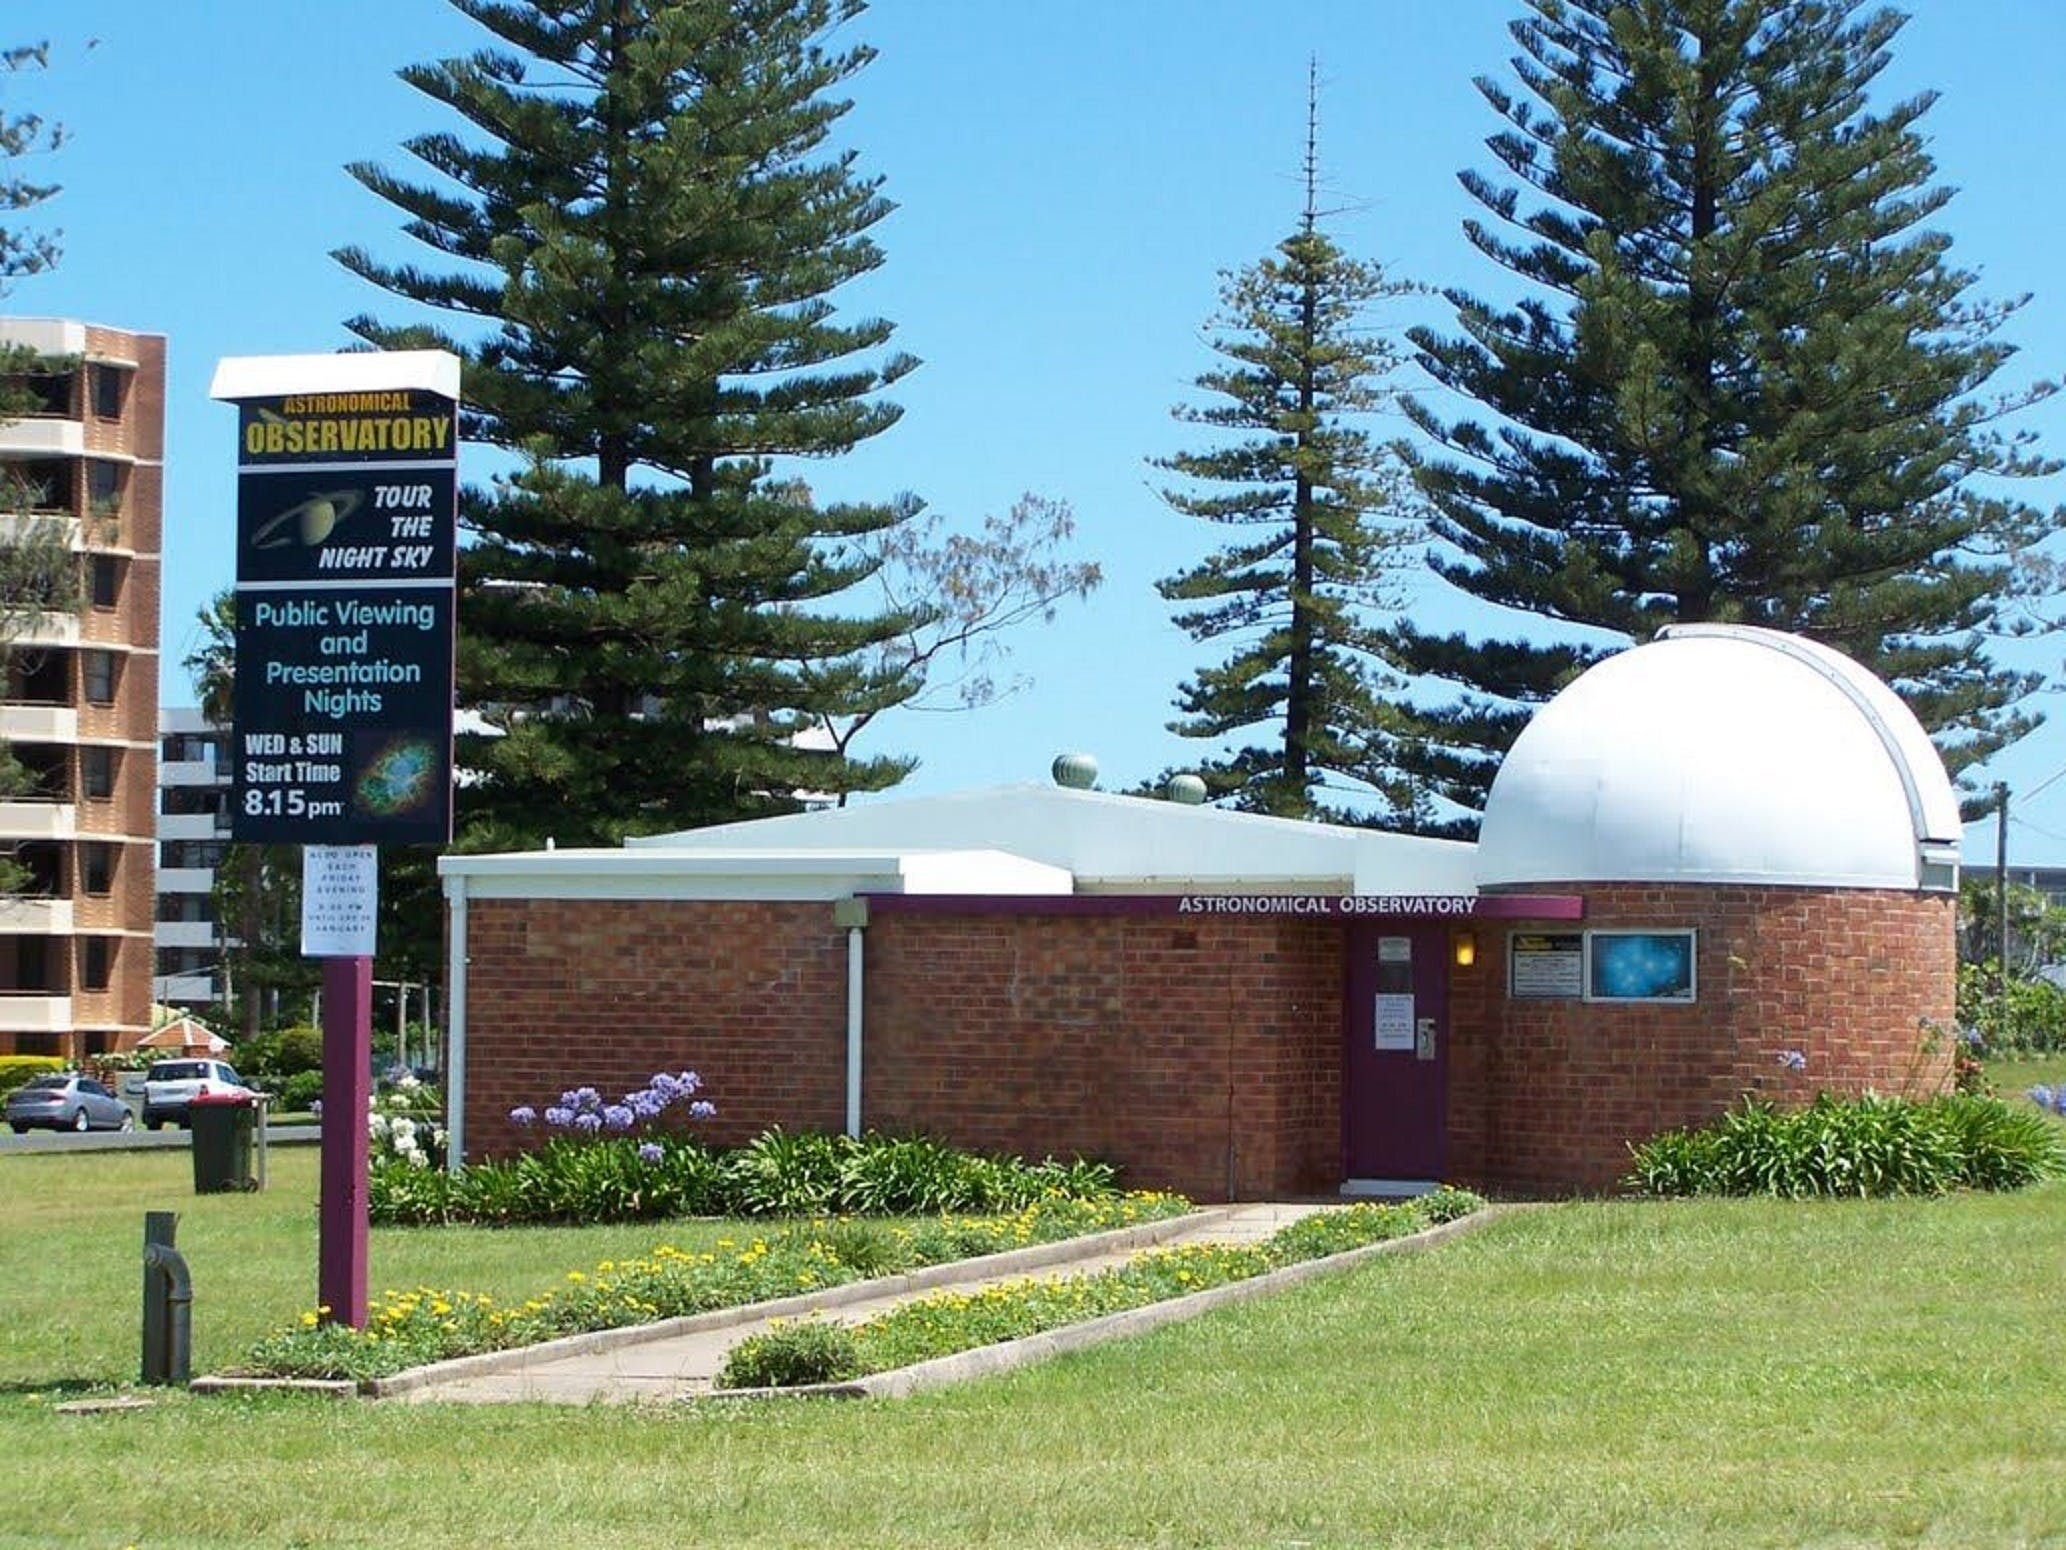 Port Macquarie Astronomical Observatory - C Tourism